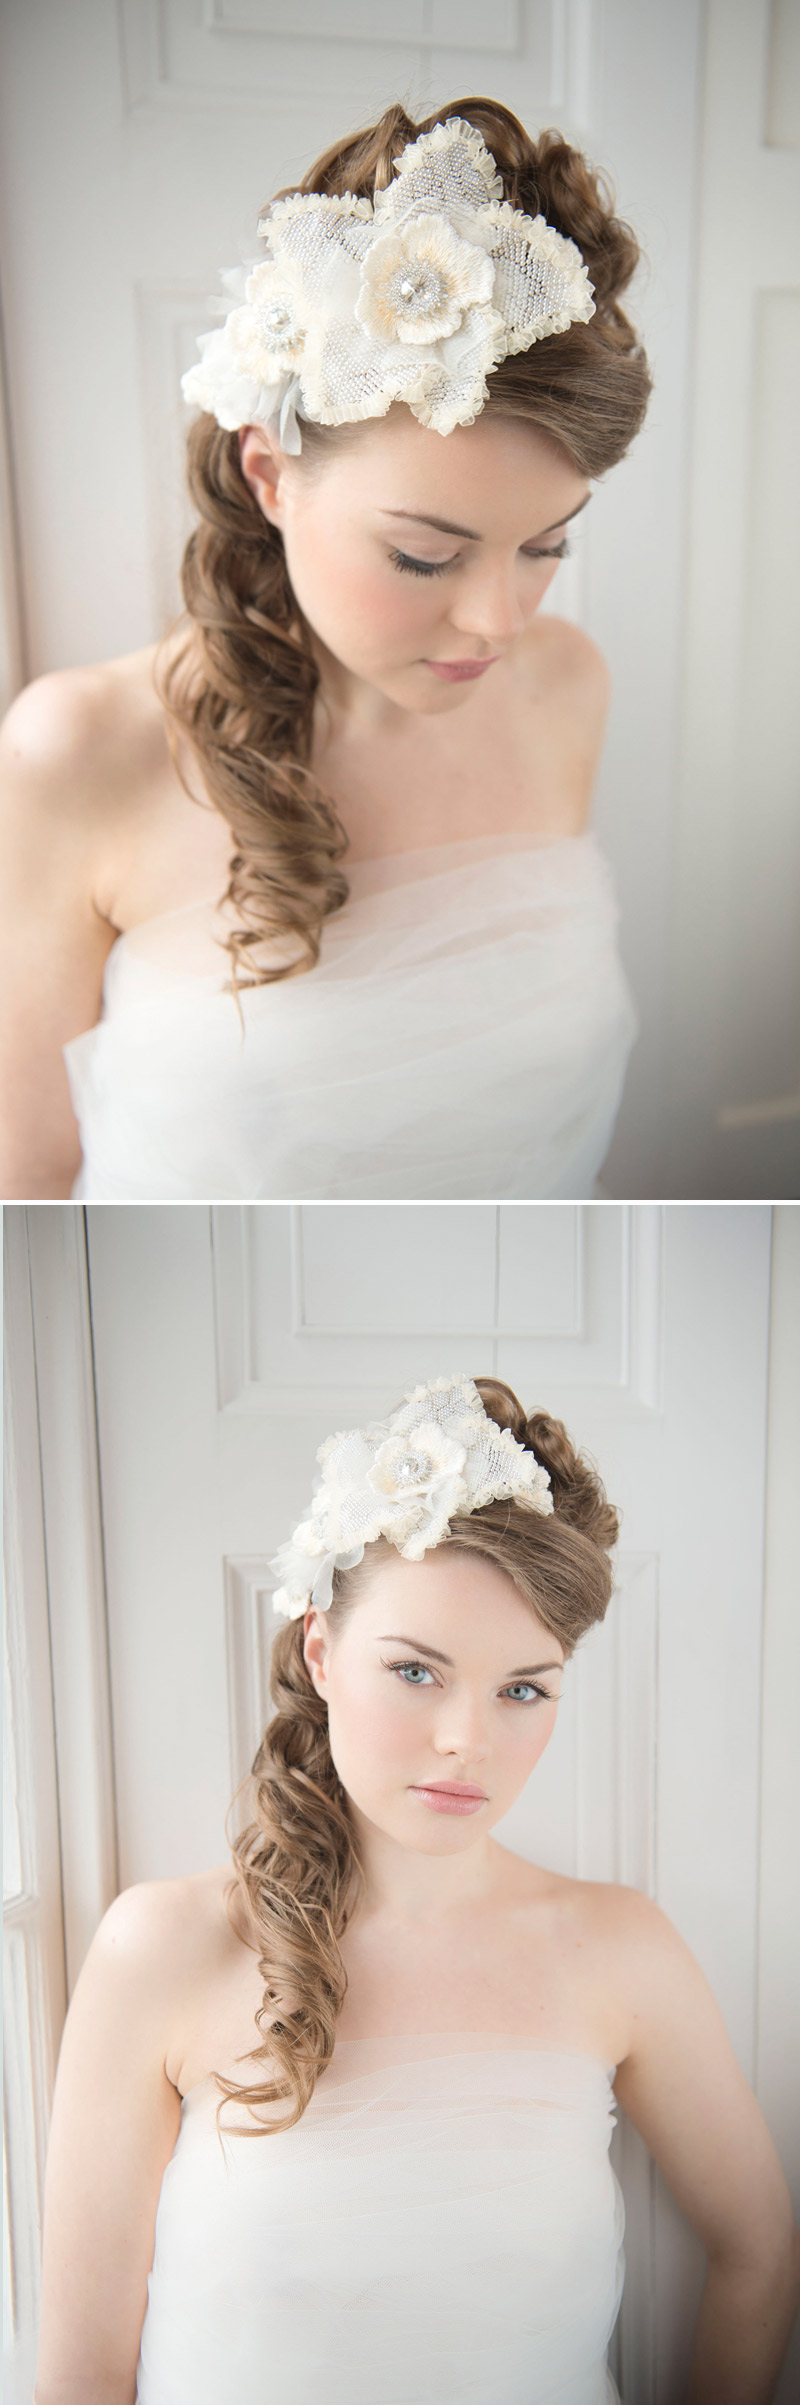 Polly-Edwards-Bridal-Accessories-4